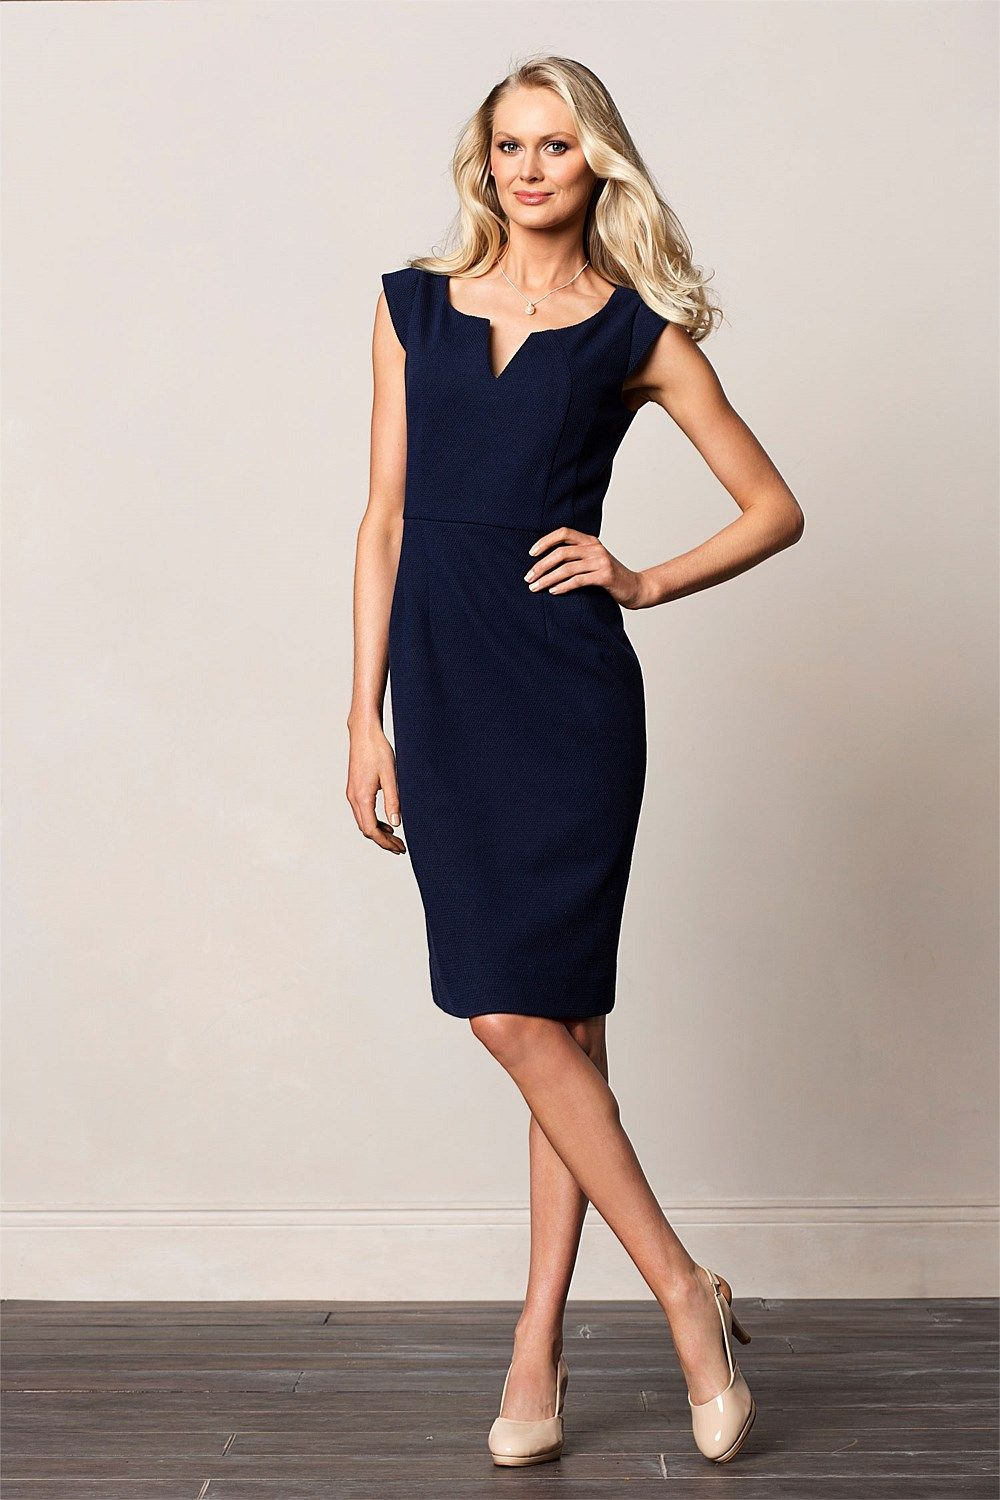 Dresses for the mature woman australia